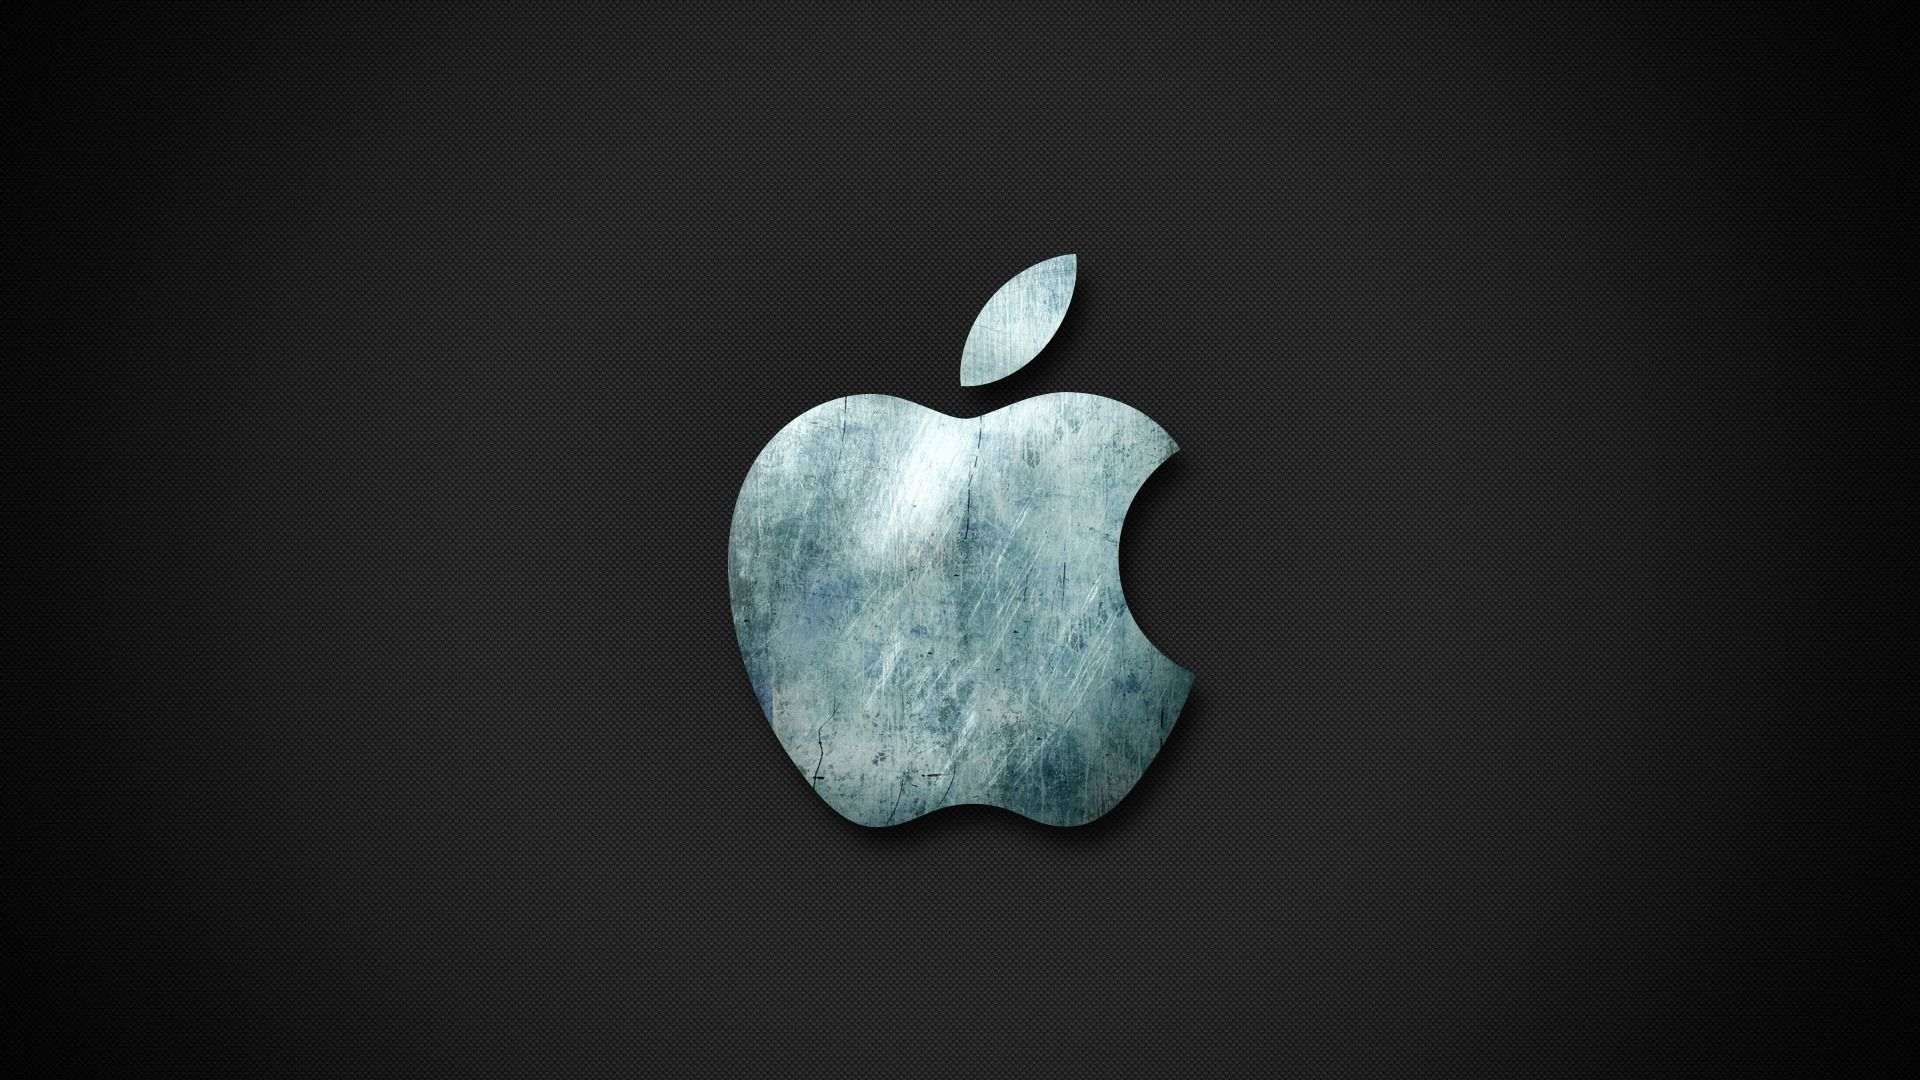 Wallpaper For Iphone Apple